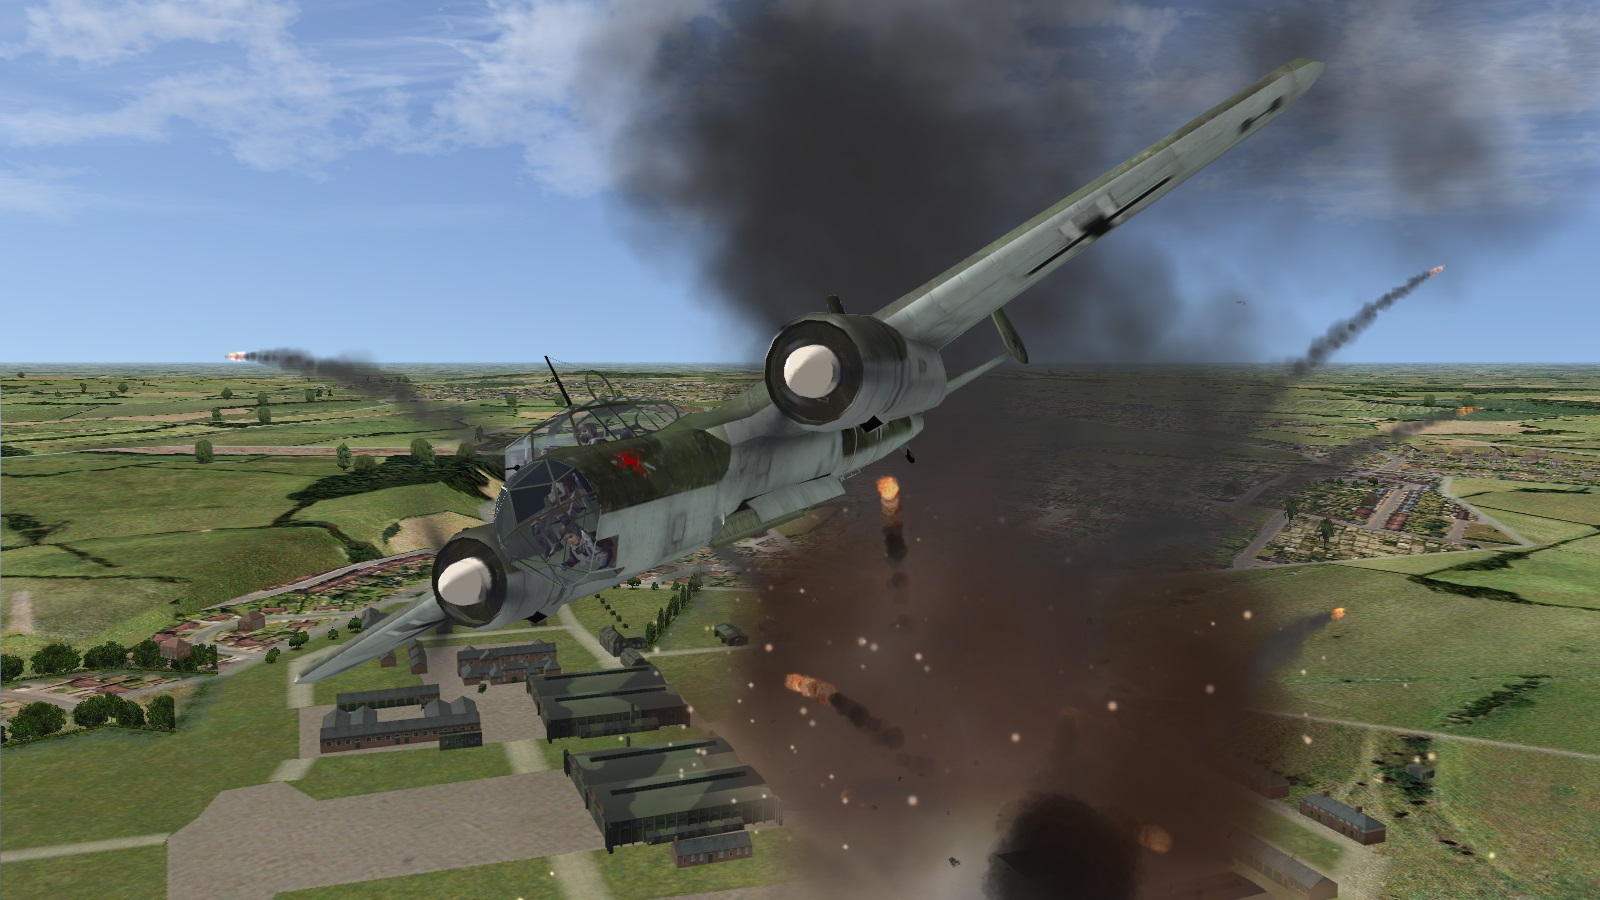 OT - Wings Over the Reich released - The A2A Simulations Community